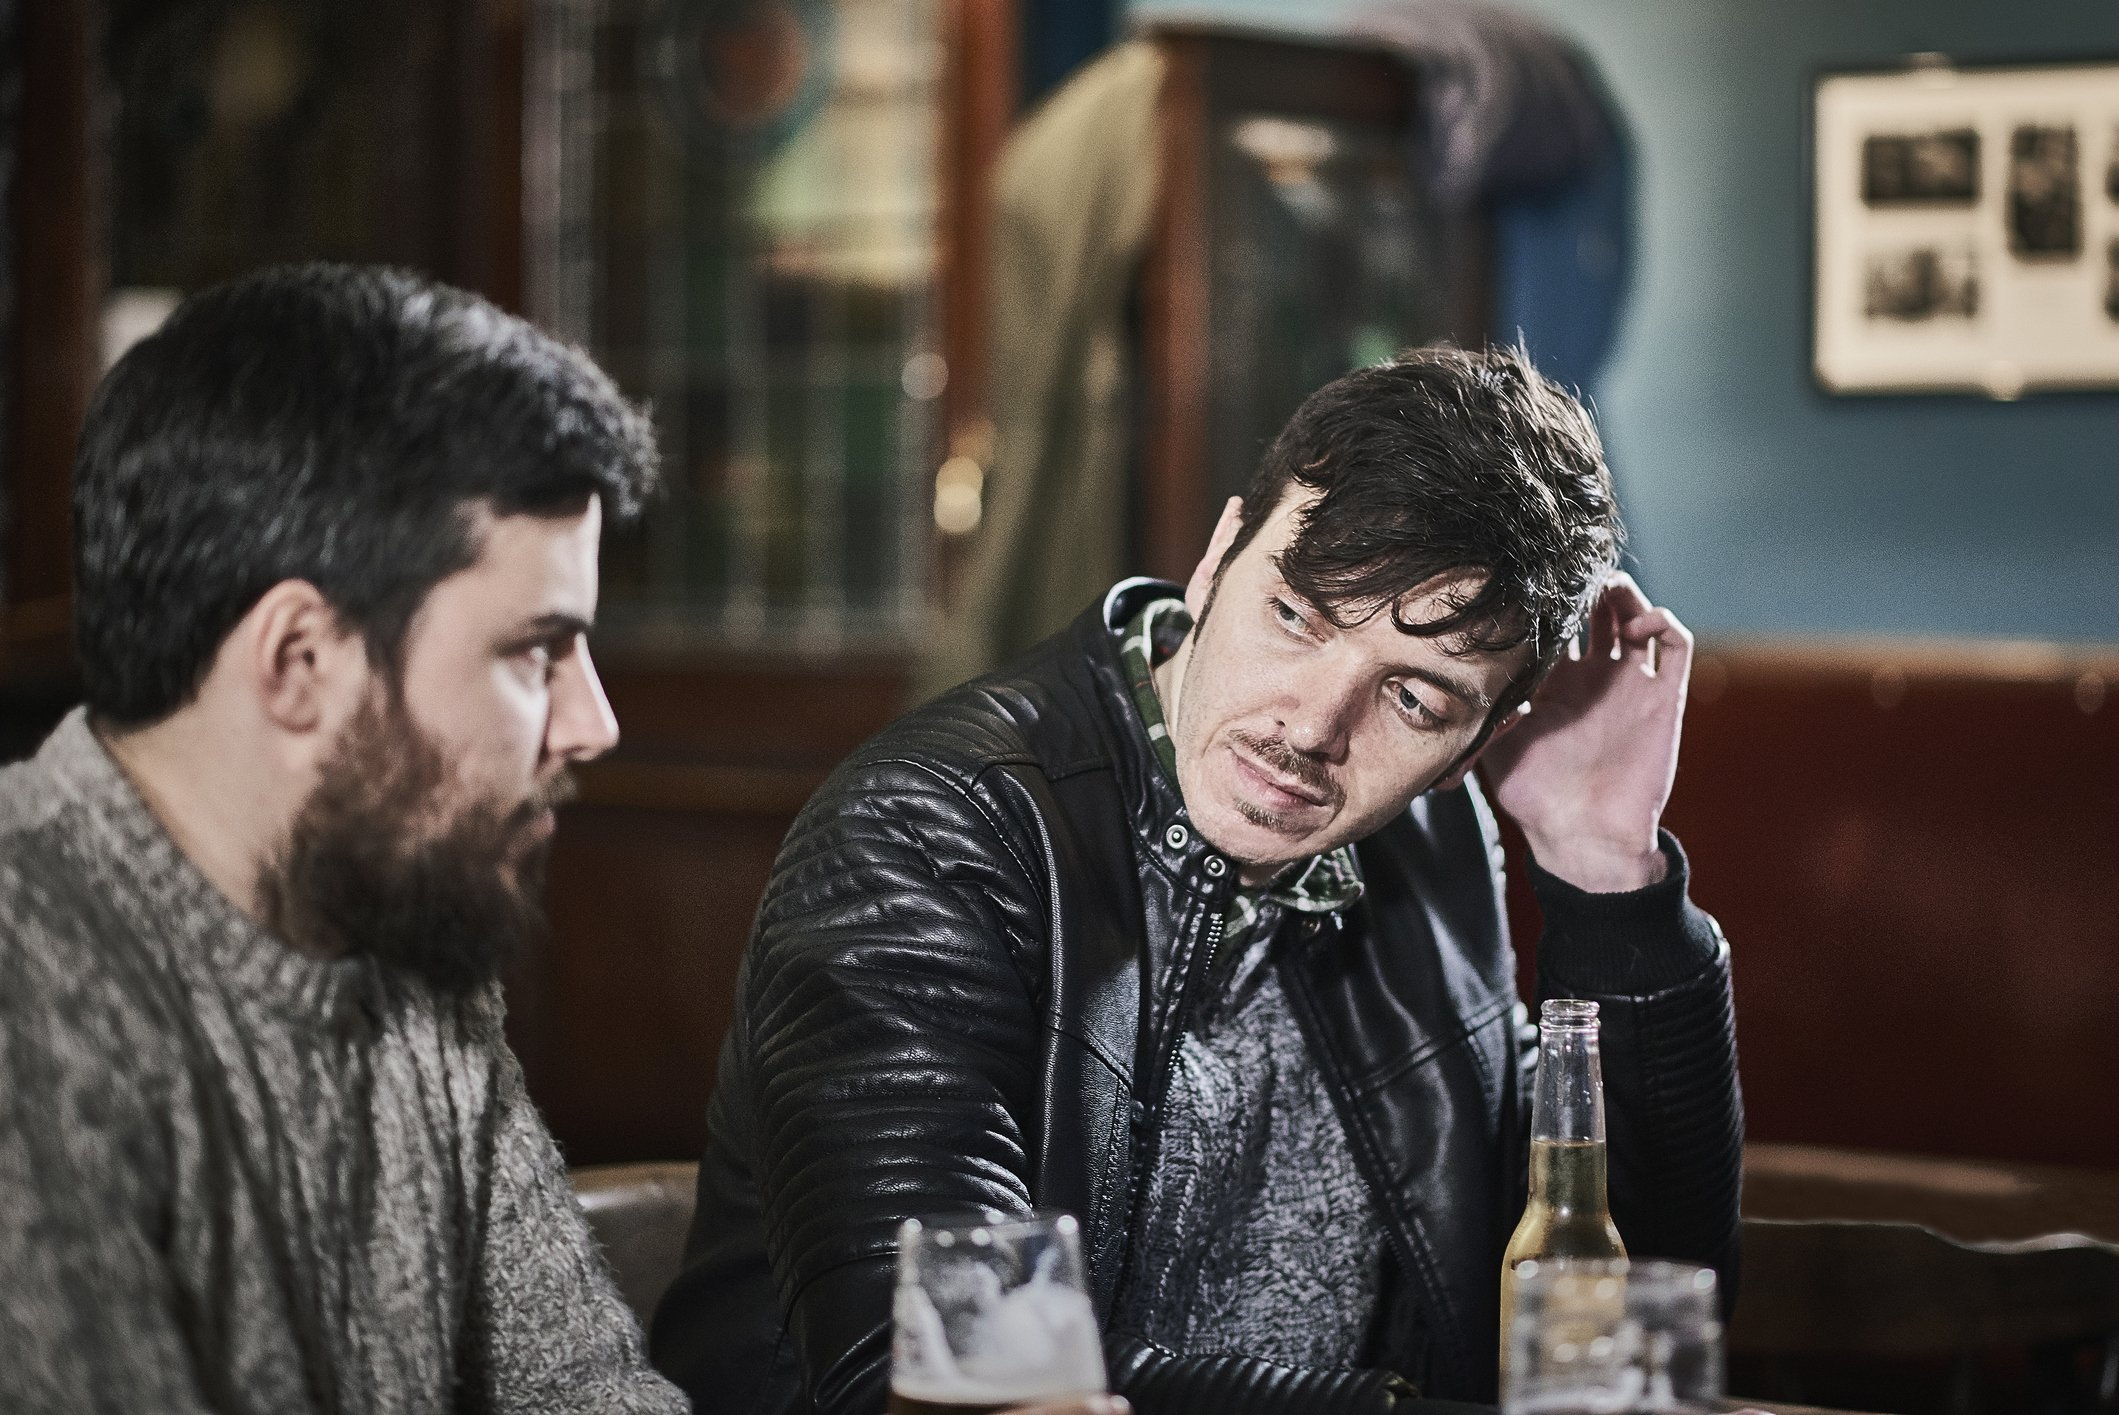 Two friends drinking together in a traditional British pub.   Photo: Getty Images